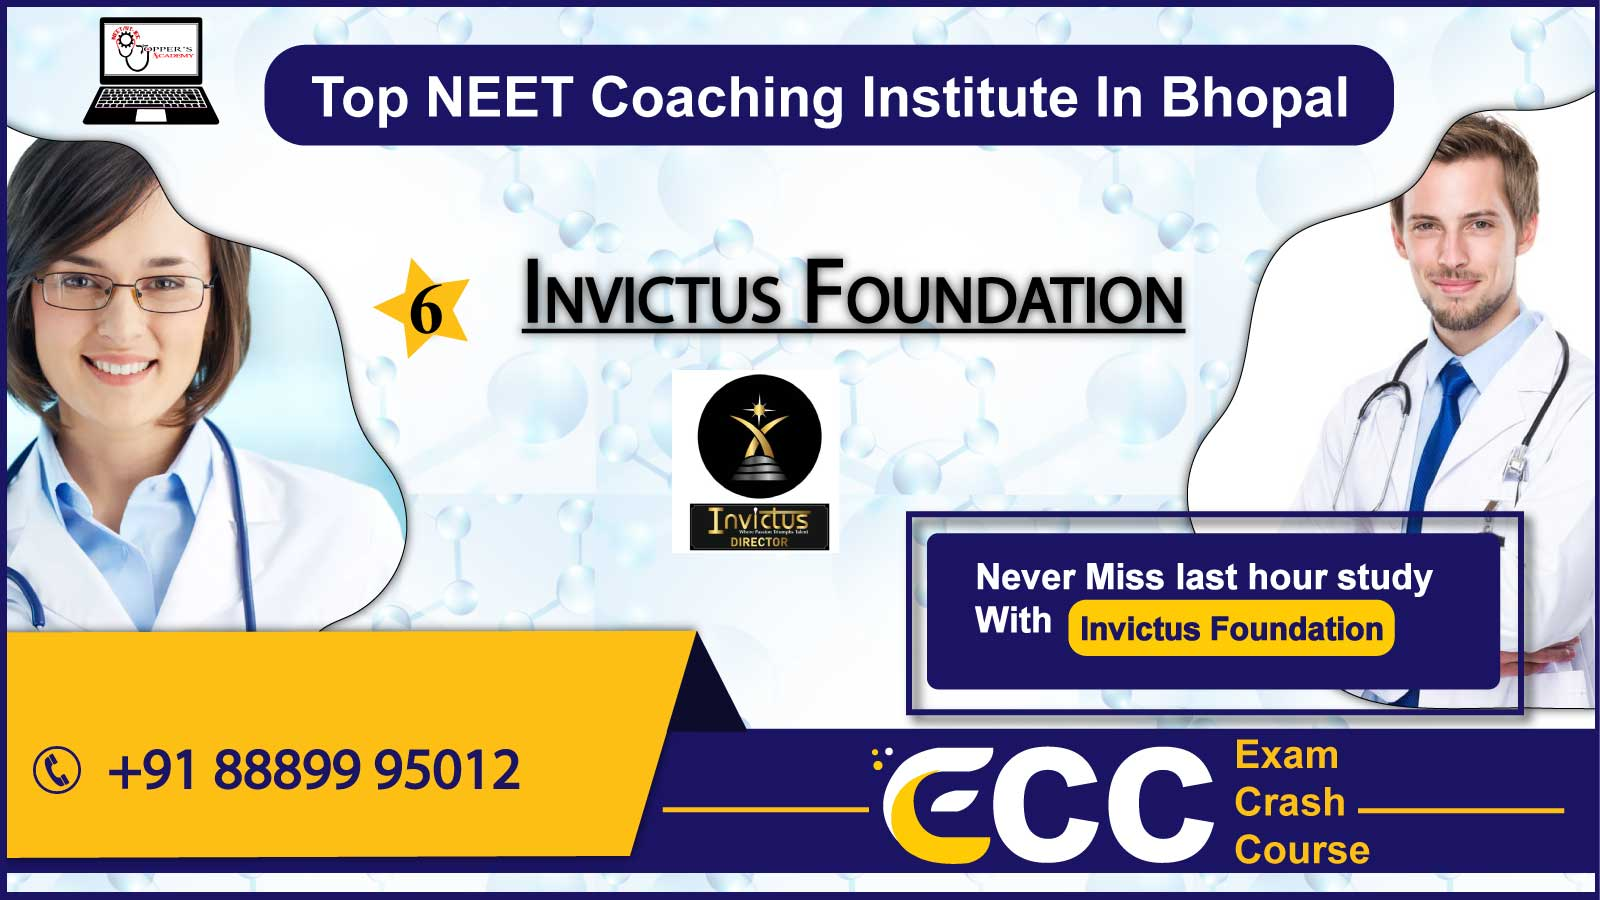 Invictus Foundation NEET Coaching In Bhopal